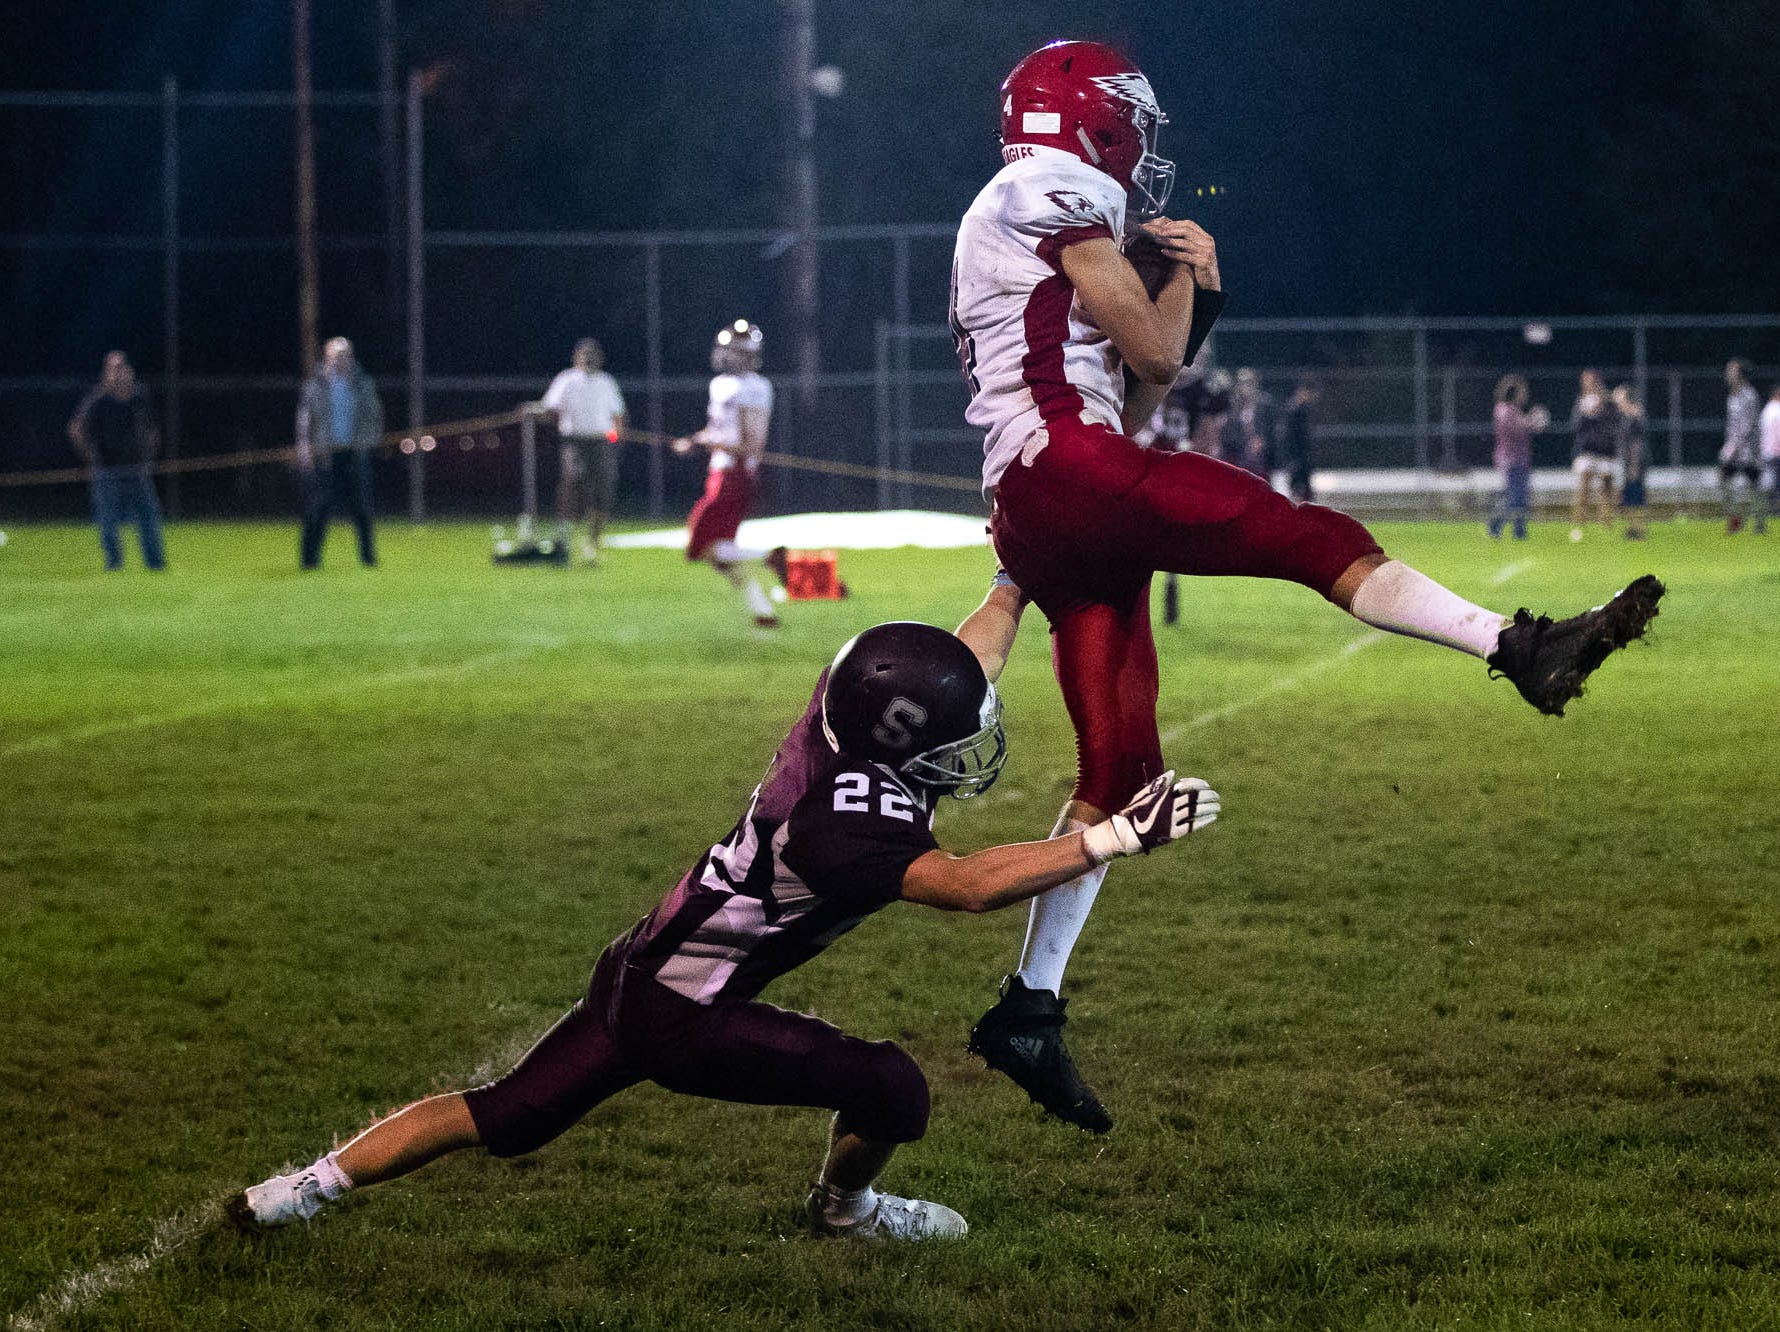 Bermudian Springs' Kolt Byers (4) completes a pass during a football game between Shippensburg and Bermudian Springs, Friday, Sept. 7, 2018, at Shippensburg High School. The Shippensburg Greyhounds defeated the Bermudian Springs Eagles 31-17.